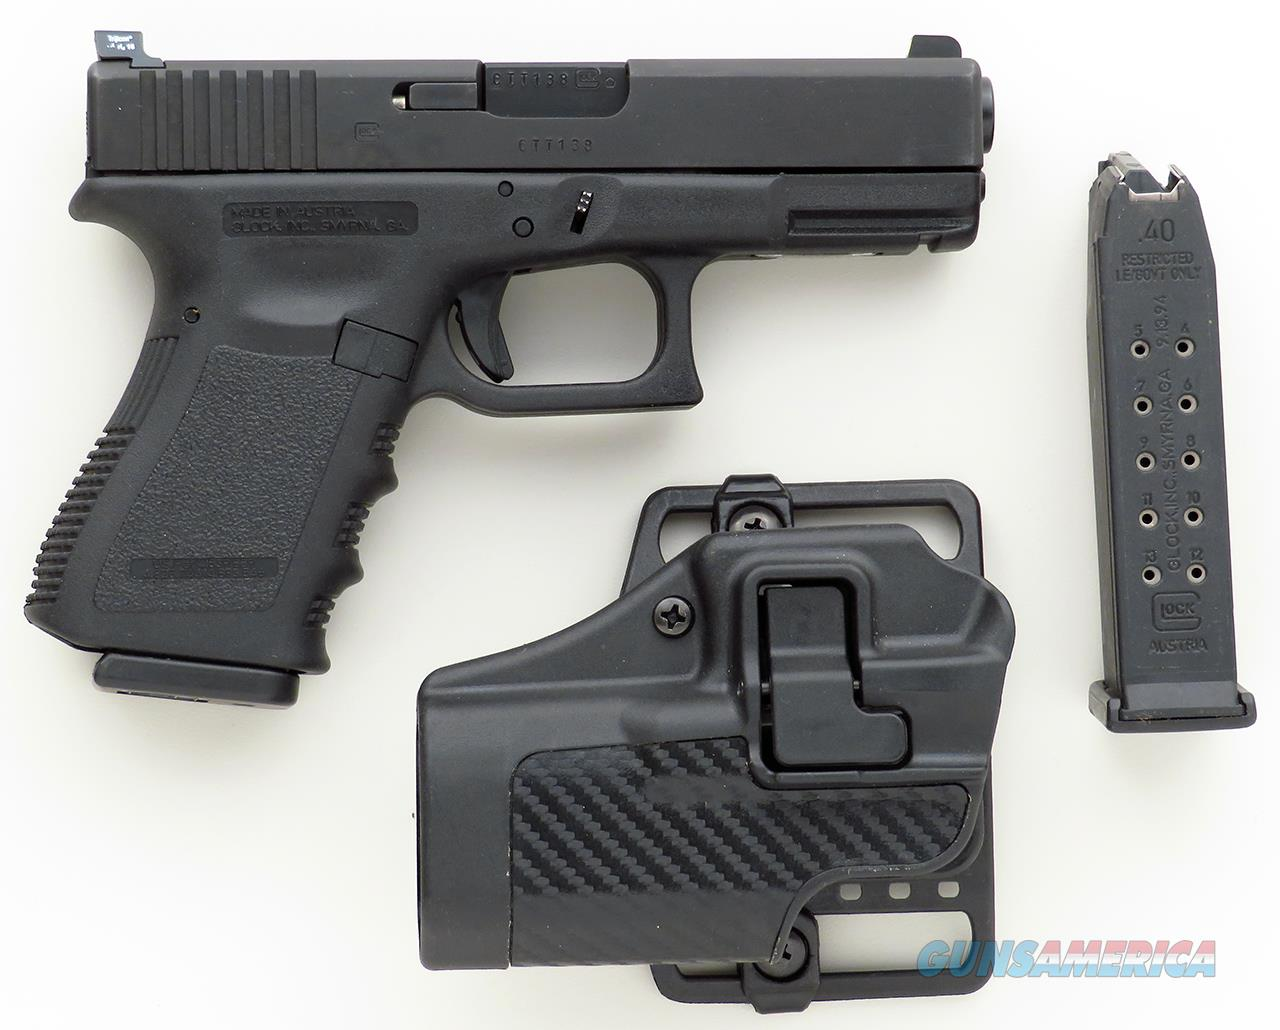 Glock Model 23 .40, Trijicon night sights, two 13-round magazines, Blackhawk! CQC holster   Guns > Pistols > Glock Pistols > 23